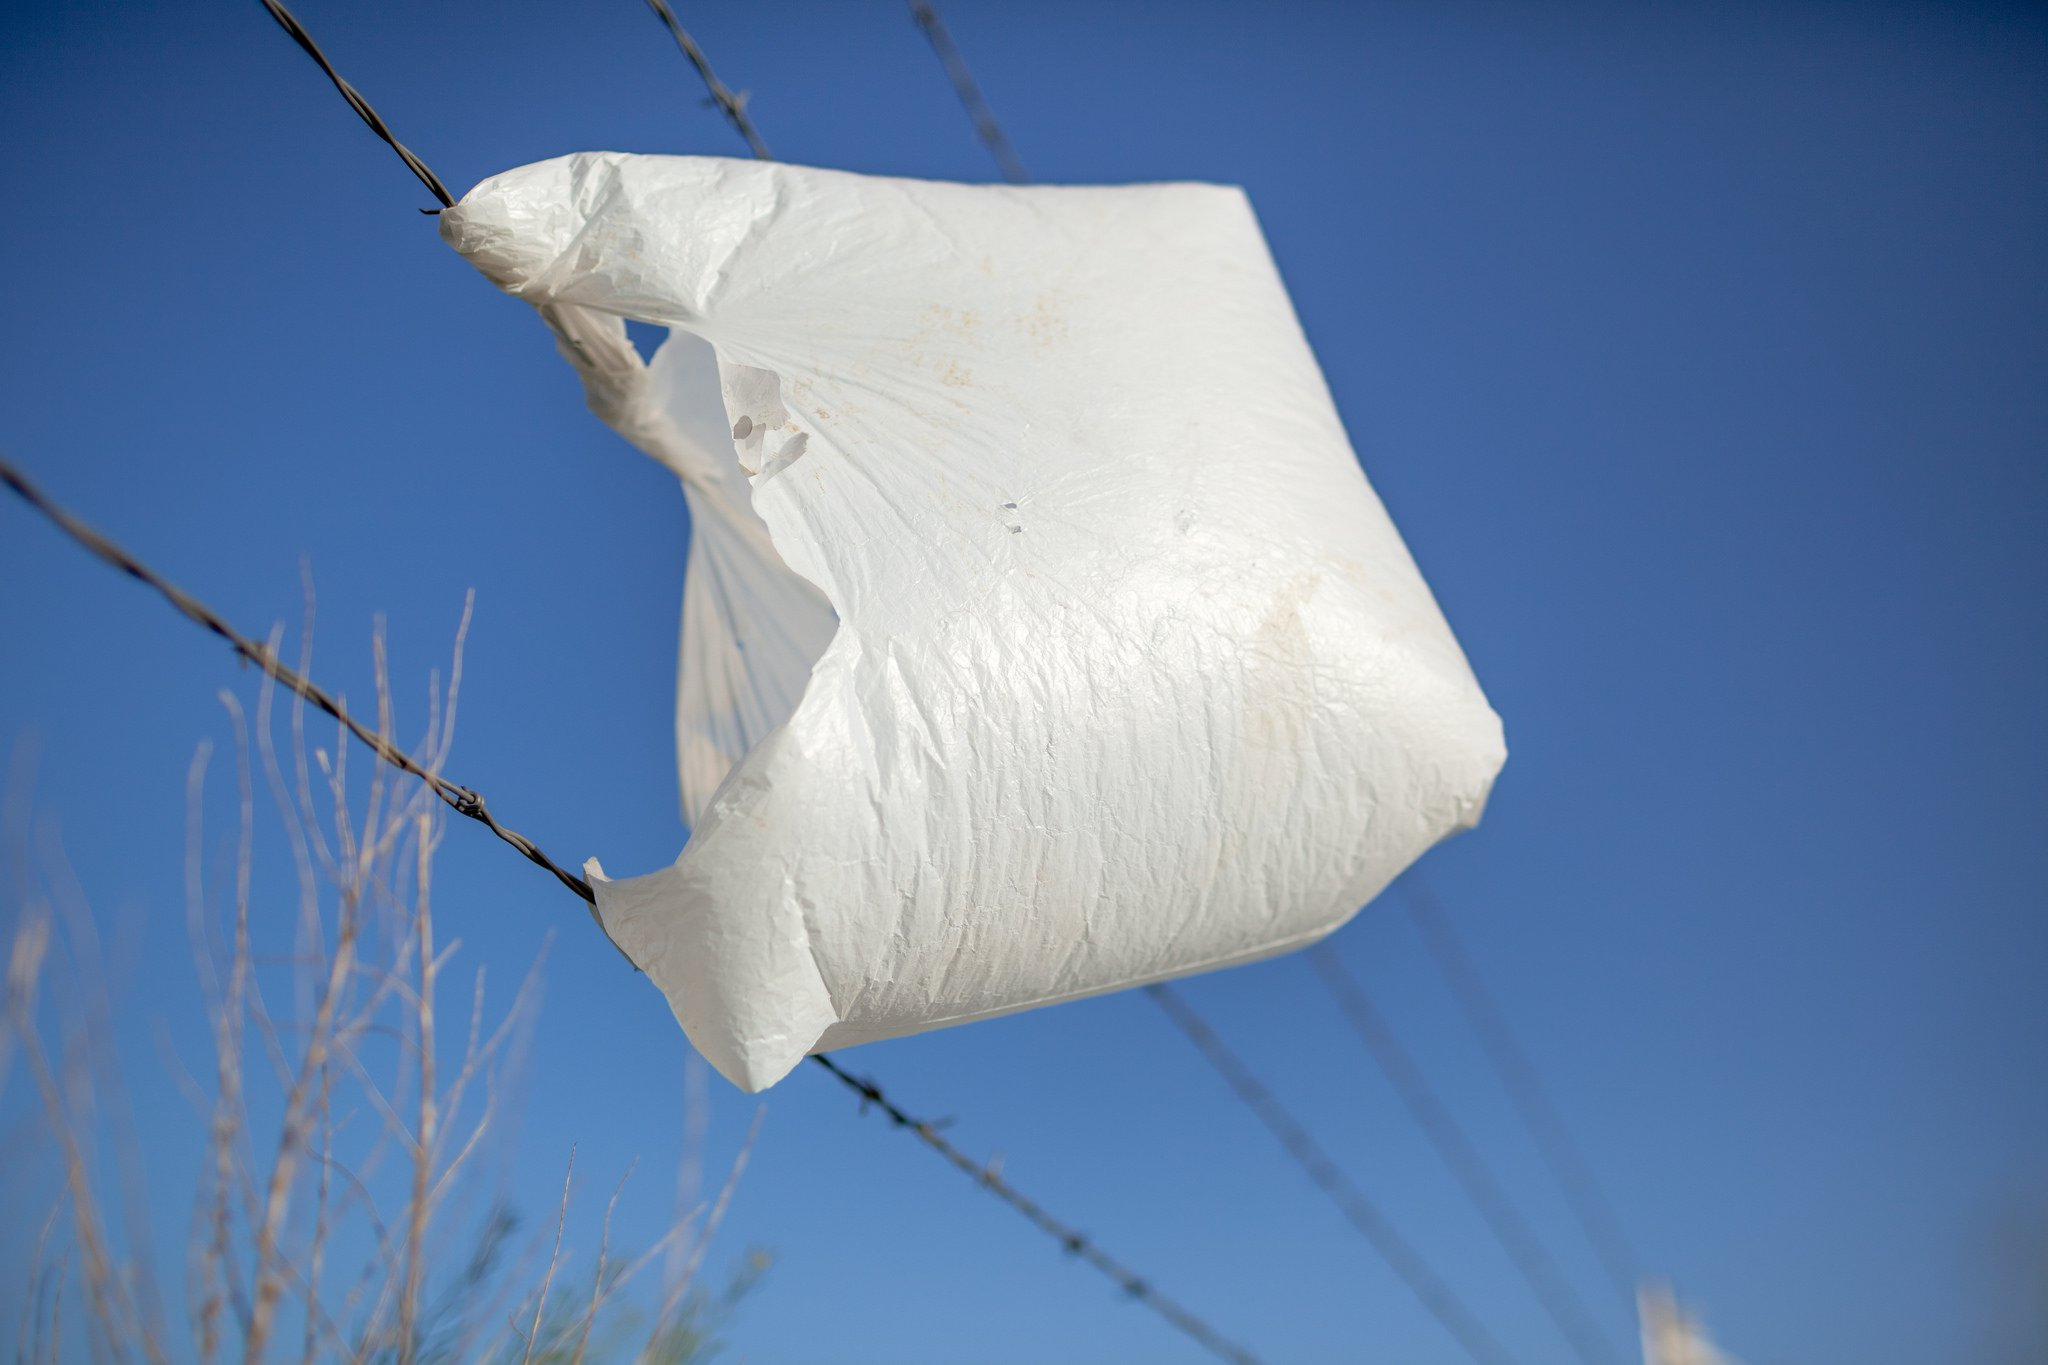 Plastic bag 1.jpg